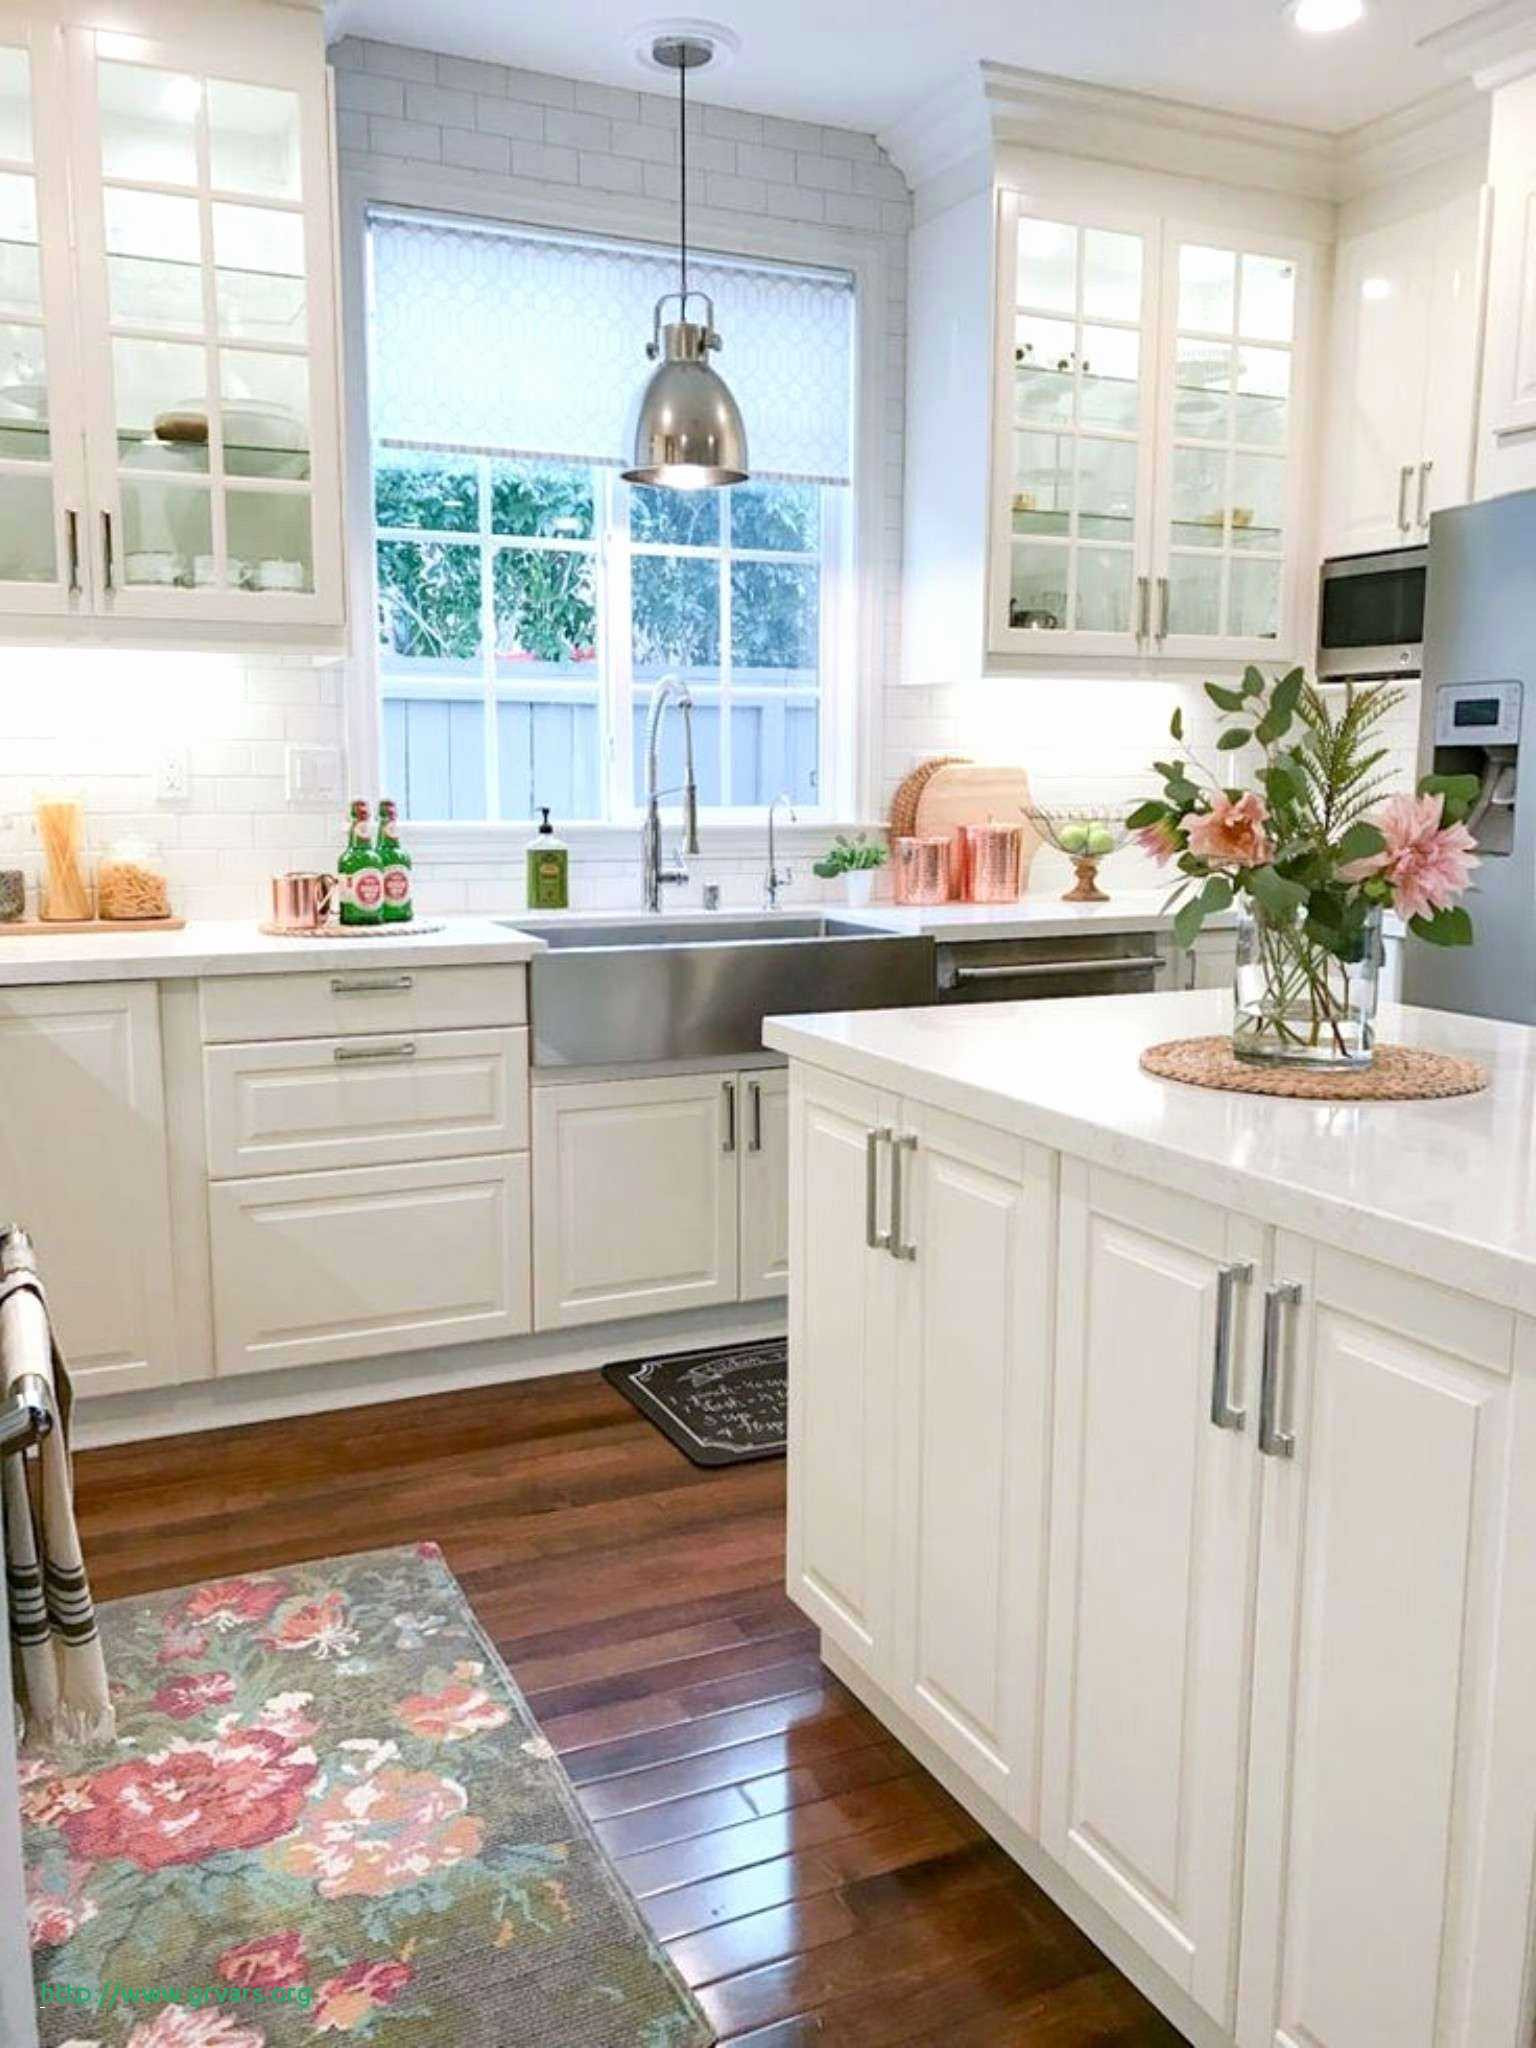 hardwood floor refinishing ideas of 22 charmant floor cover for painting ideas blog within light blue bedroom fresh kitchen cabinets fresh kitchen cabinet 0d from kitchen cabinets painted taupe source